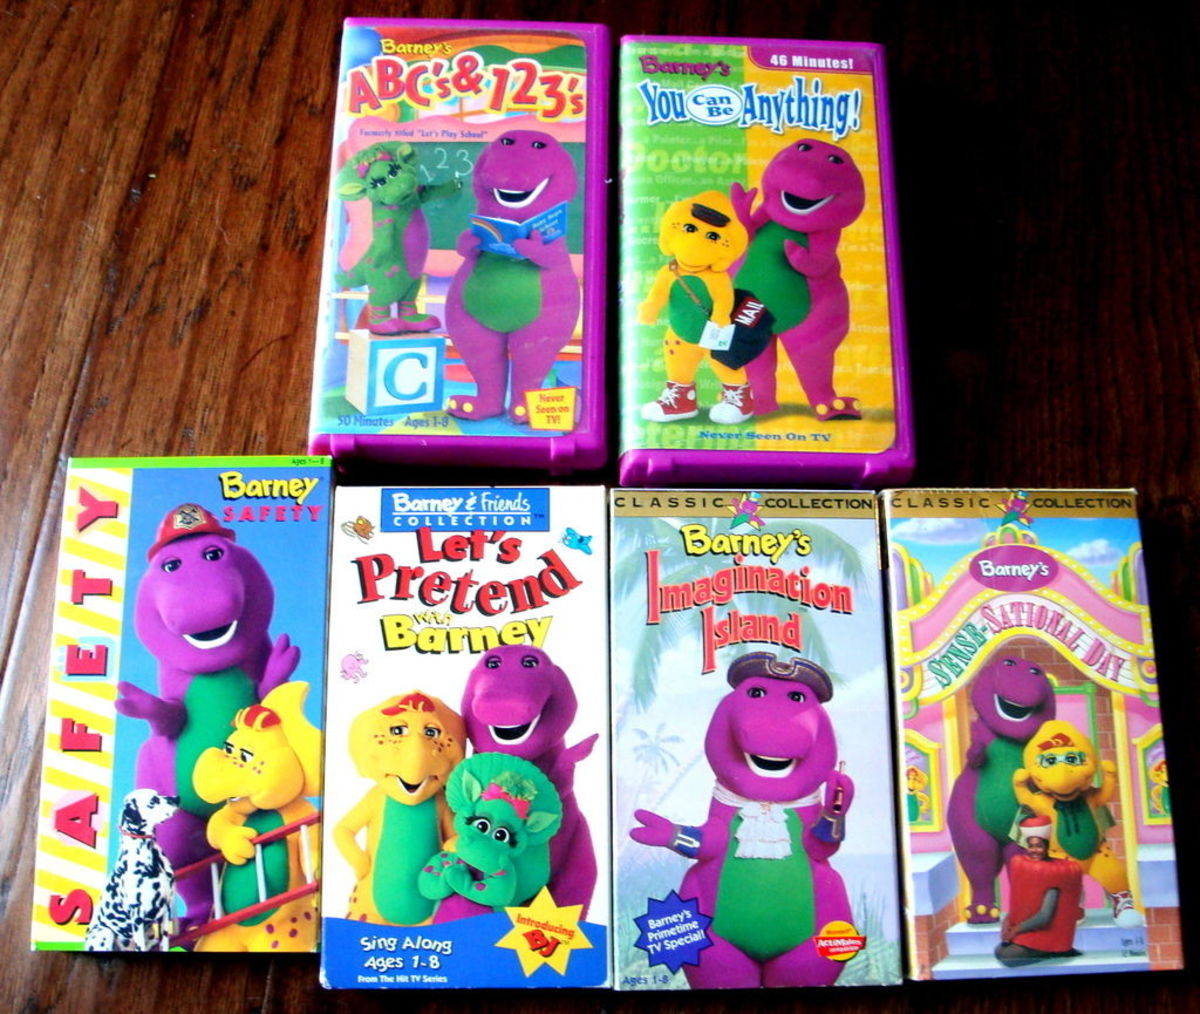 Throughout the 1990s and early 2000s Barney's home videos were very popular and great sellers in video stores.